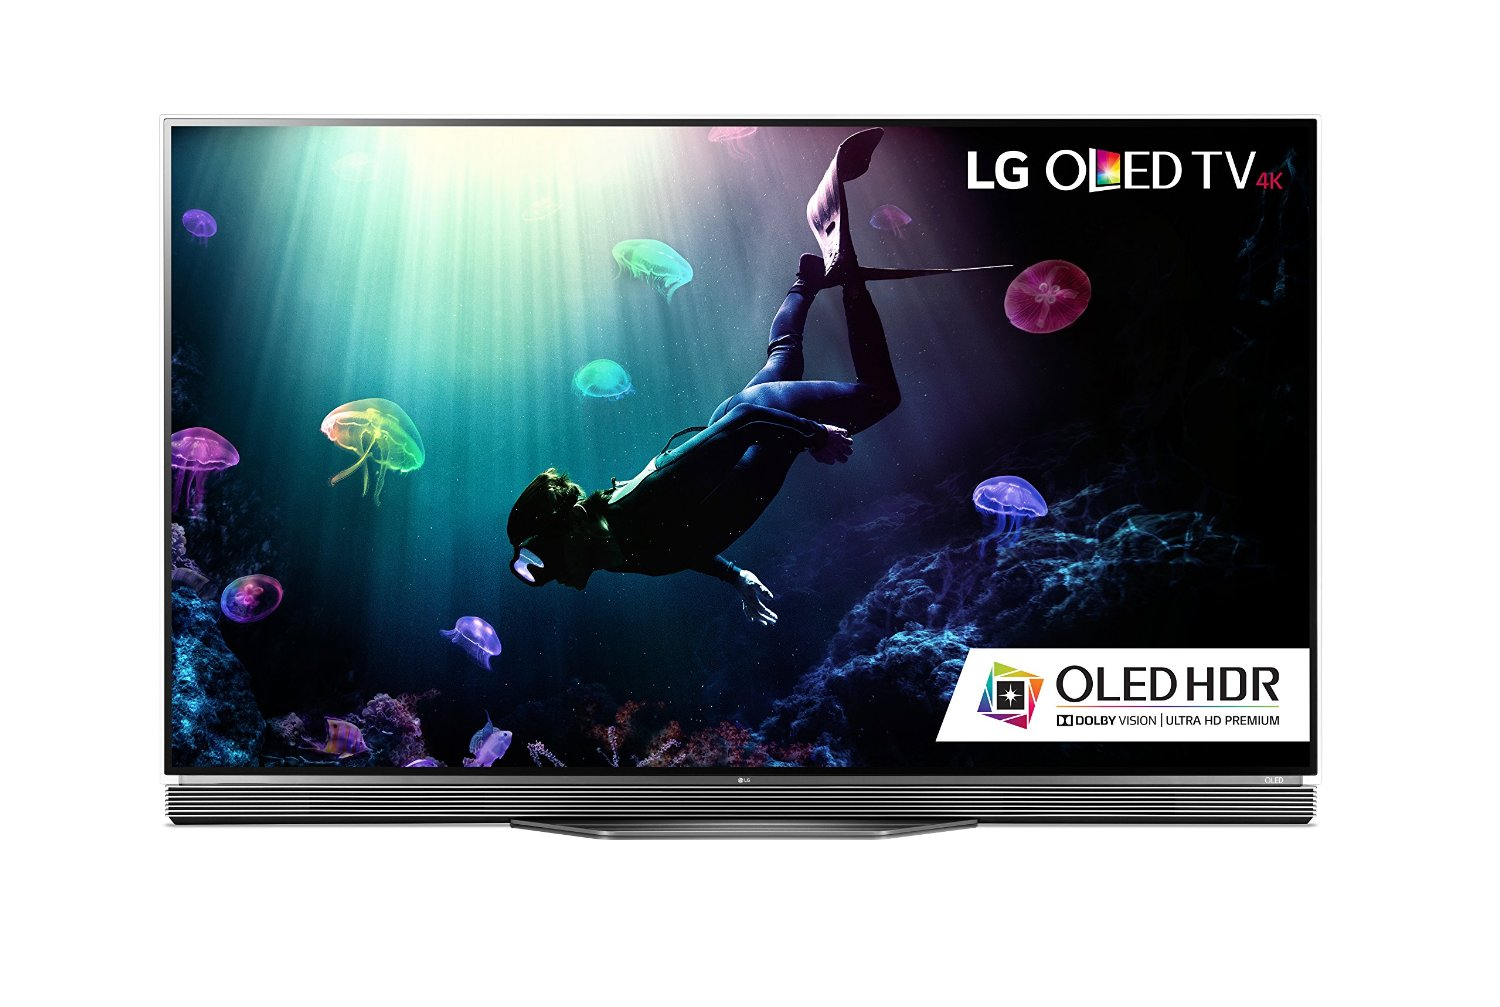 The [LG E6 55-inch 4K TV](https://www.amazon.com/LG-Electronics-OLED65E6P-65-Inch-Ultra/dp/B019O5F86W?SubscriptionId=AKIAJ7T5BOVUVRD2EFYQ&linkCode=xm2&creativeASIN=B019O5F86W&creative=165953&psc=1&camp=2025&tag=toolstoysdeals-20) offers the best image quality money can buy, and the current $500 discount will be a welcome savings.